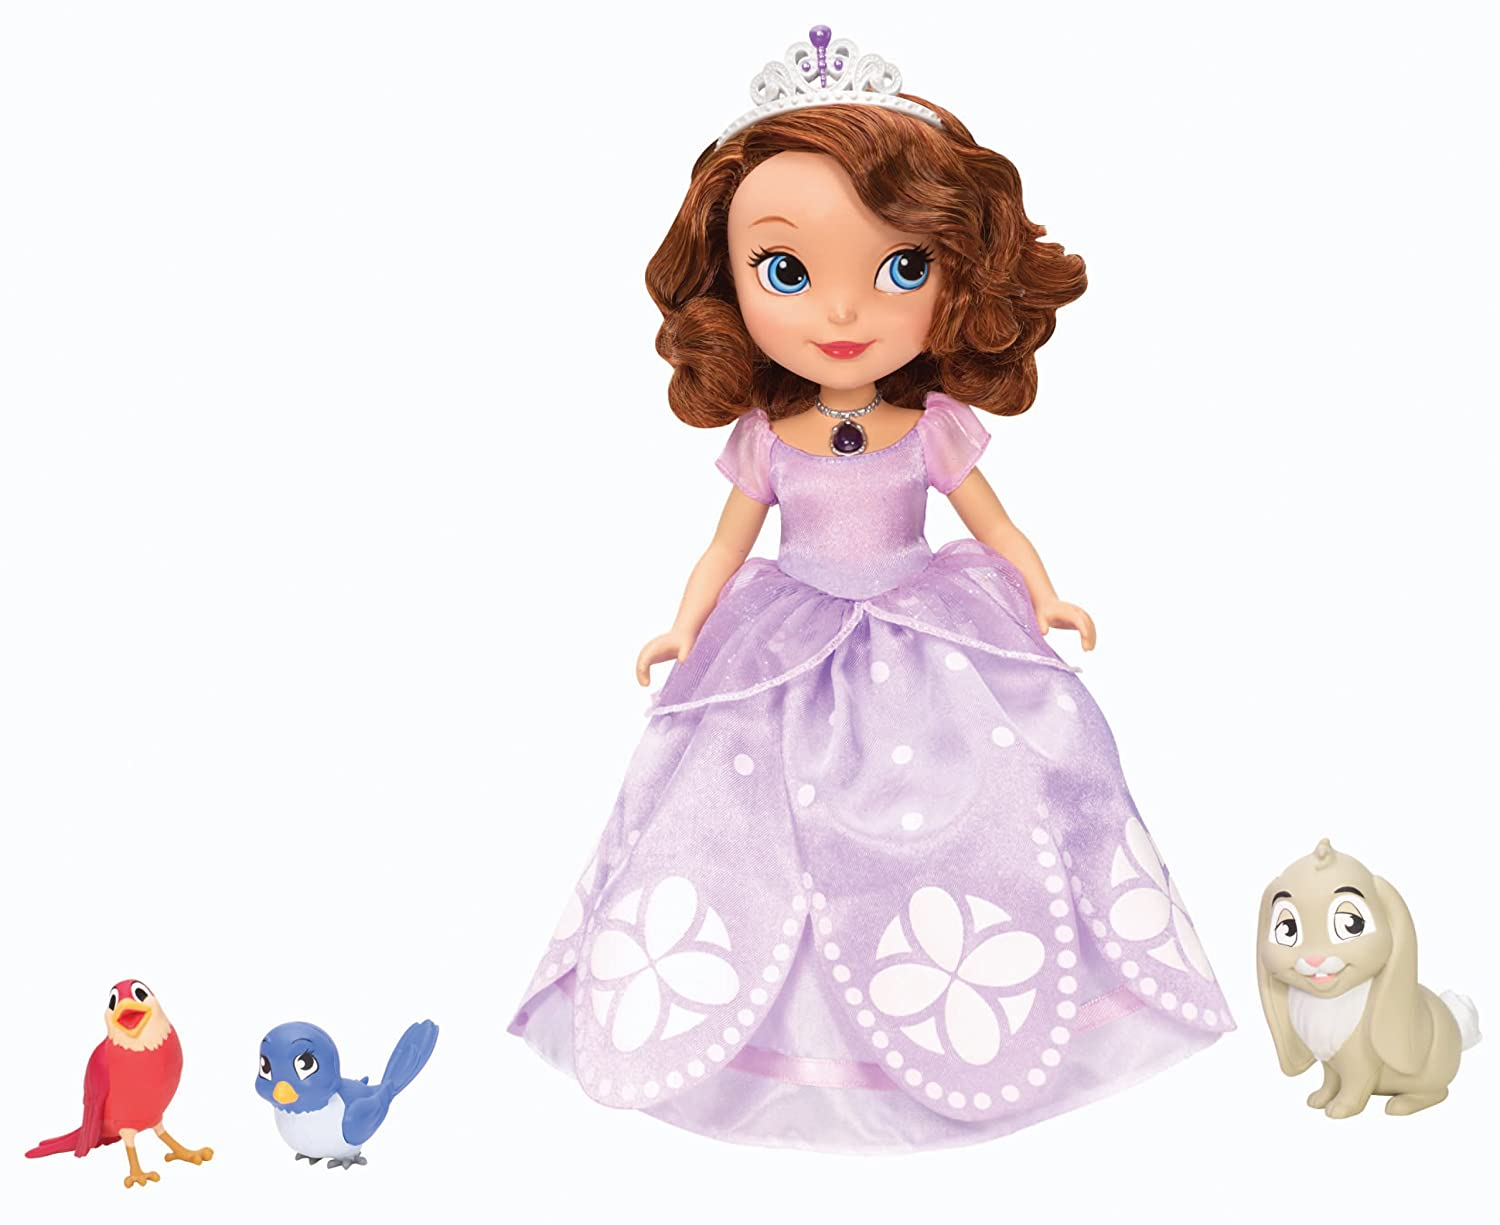 Disney Sofia the First Dolls